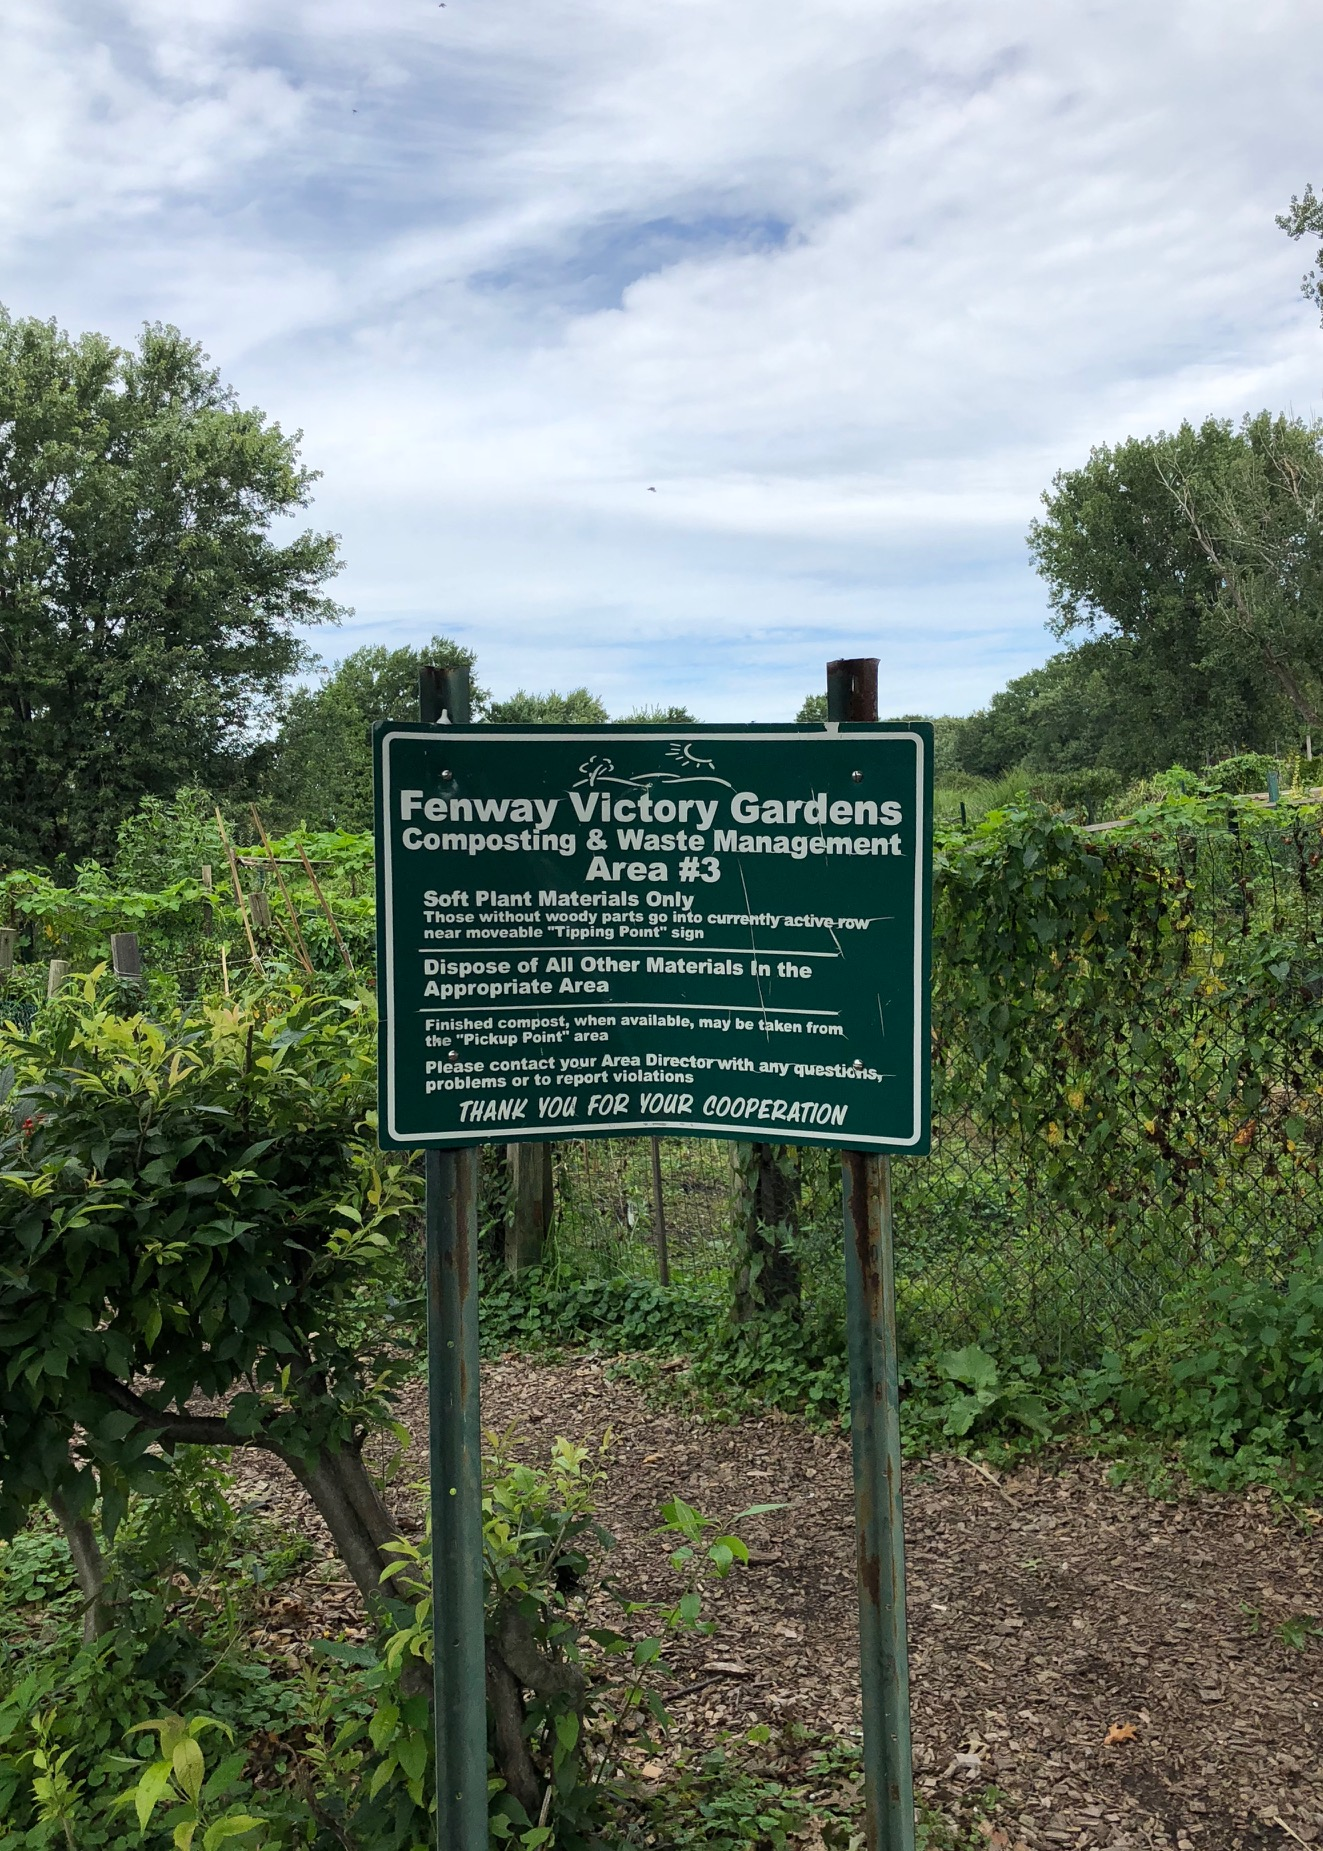 This sign shows some of the uses, policies, and concerns for the garden today. One policy, which prohibits littering, shows that local authorities have struggled in the past with keeping this area clean.